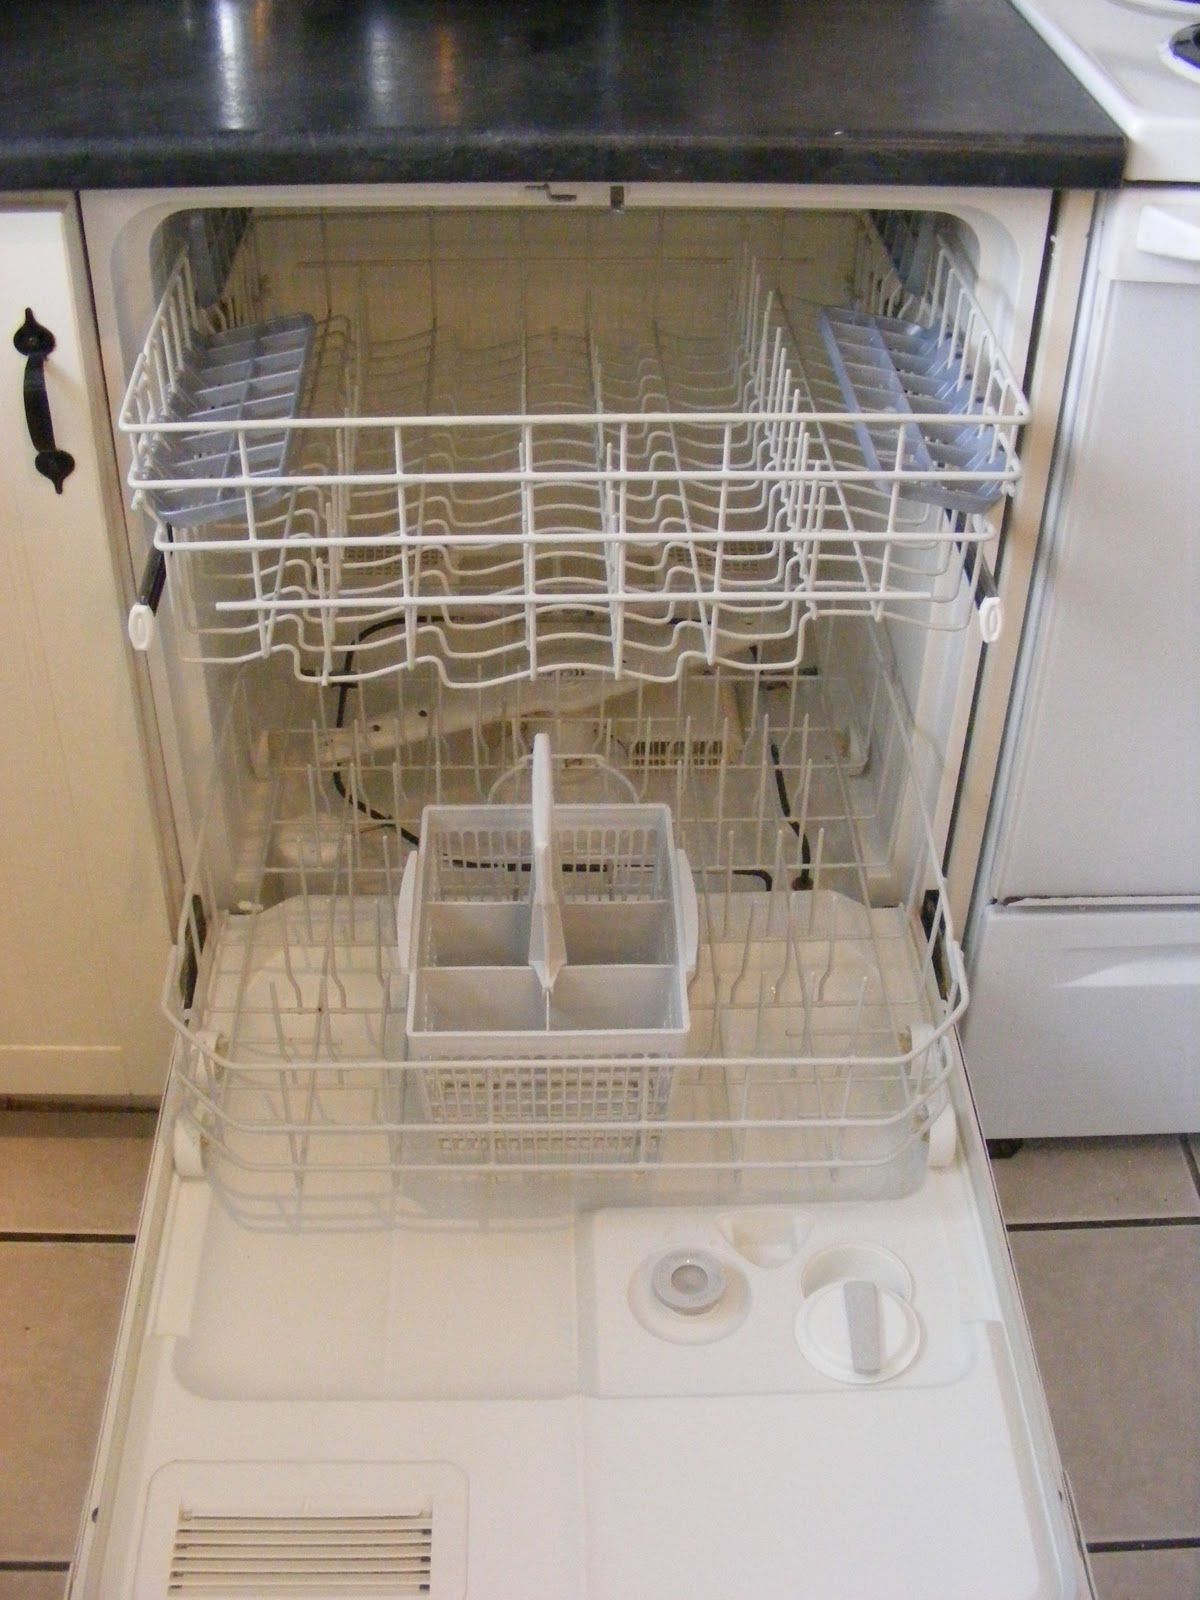 How To Clean Your Dishwasher Without Gagging Too Much